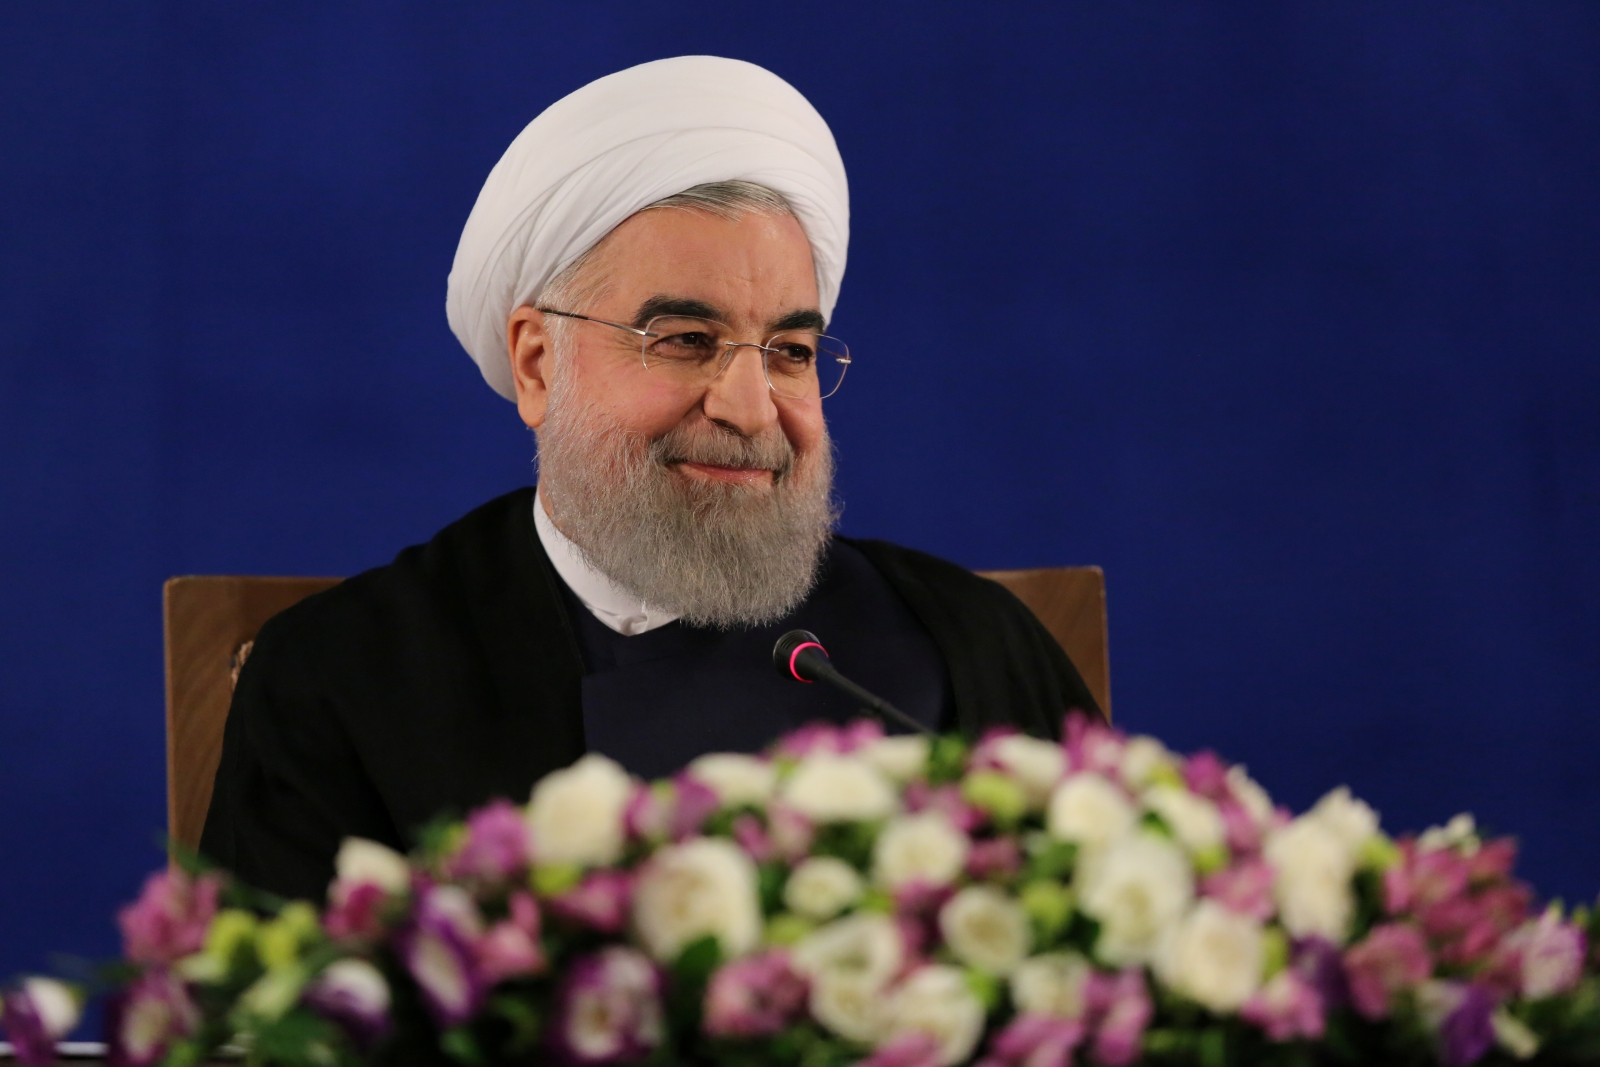 USA 'shamelessly threatening Russian Federation with atomic weapon', says Iran's Rouhani